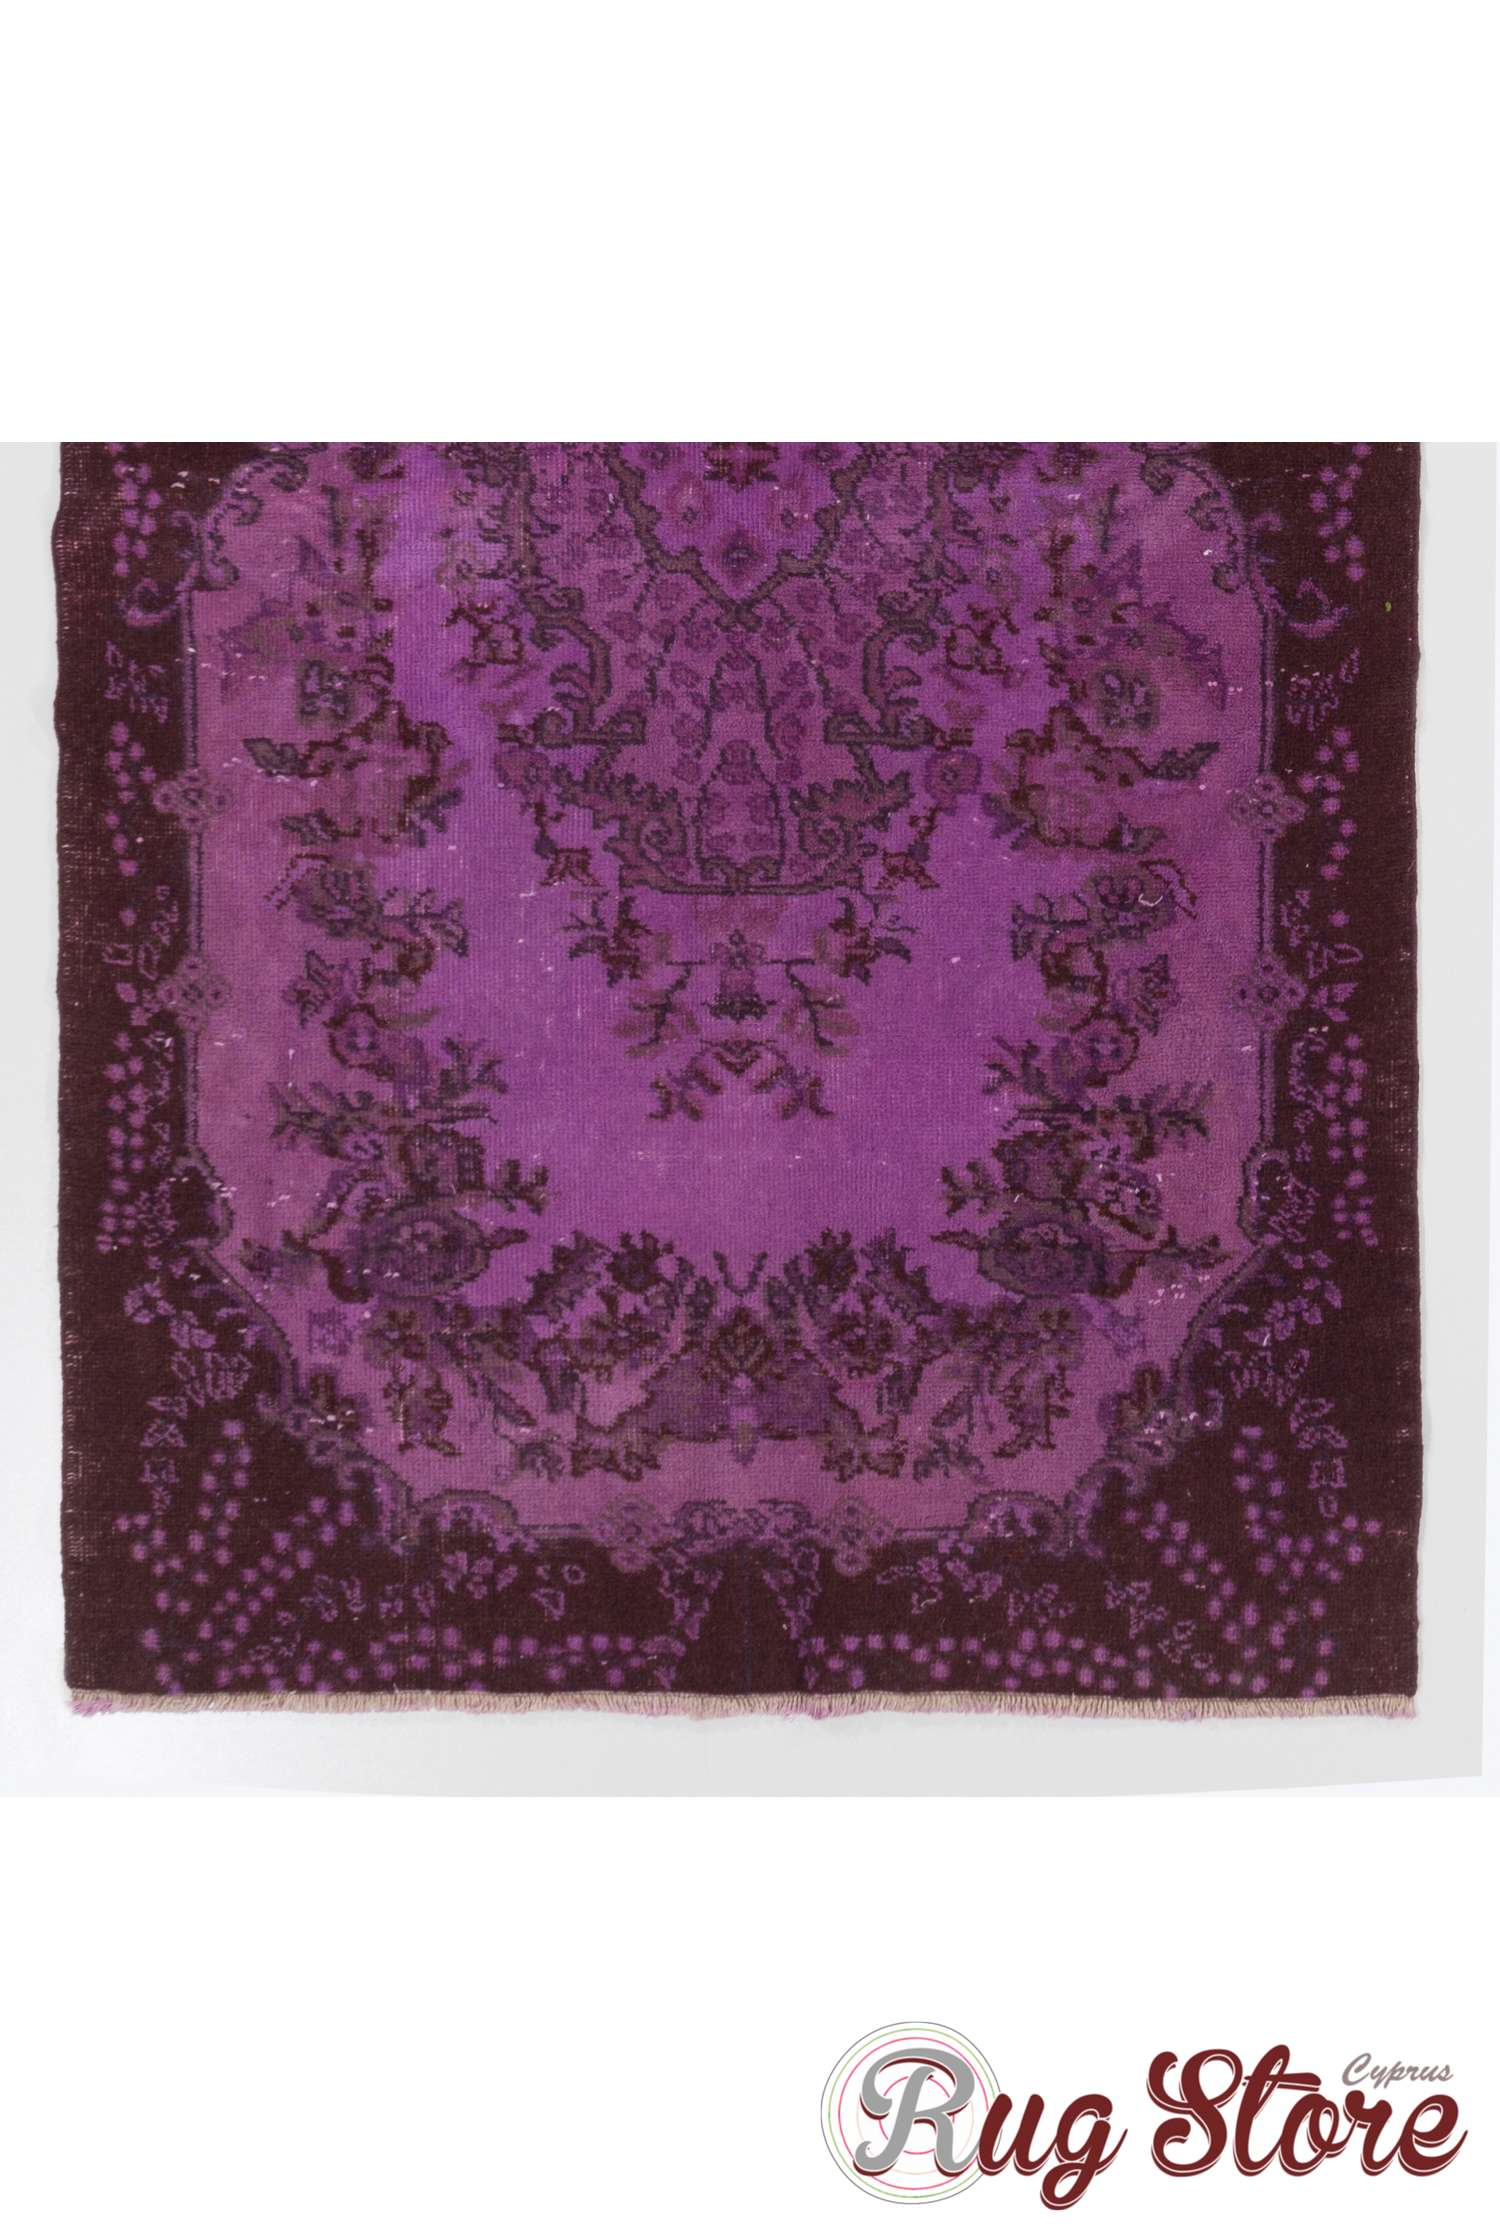 4 X 7 121x213 Cm Purple Overdyed Vintage Turkish Rug